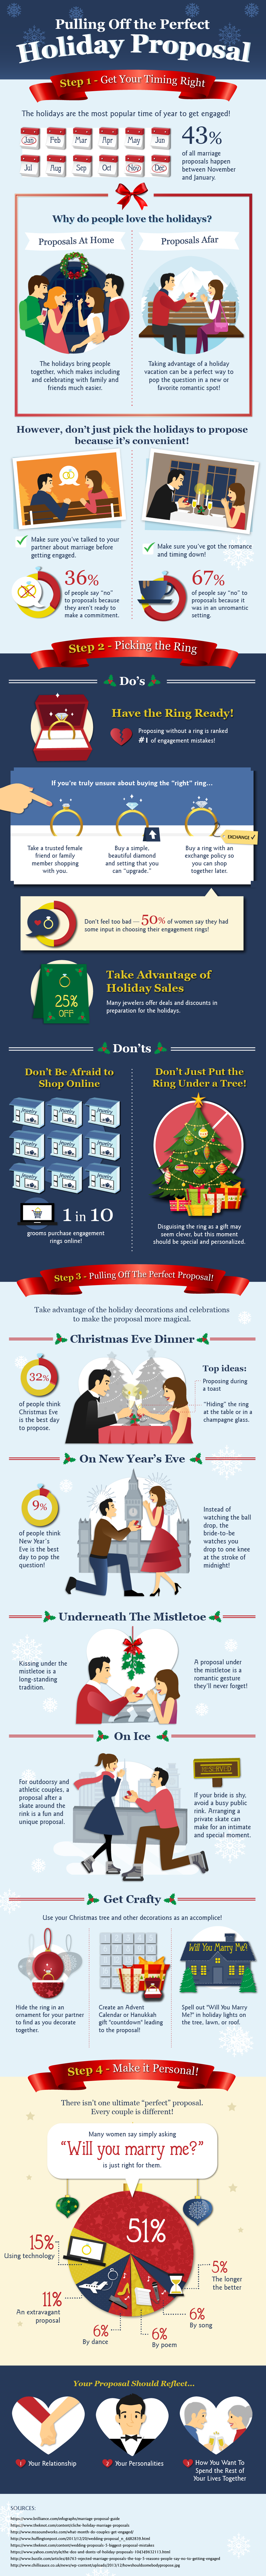 FiftyFlowers Holiday Proposal Guide